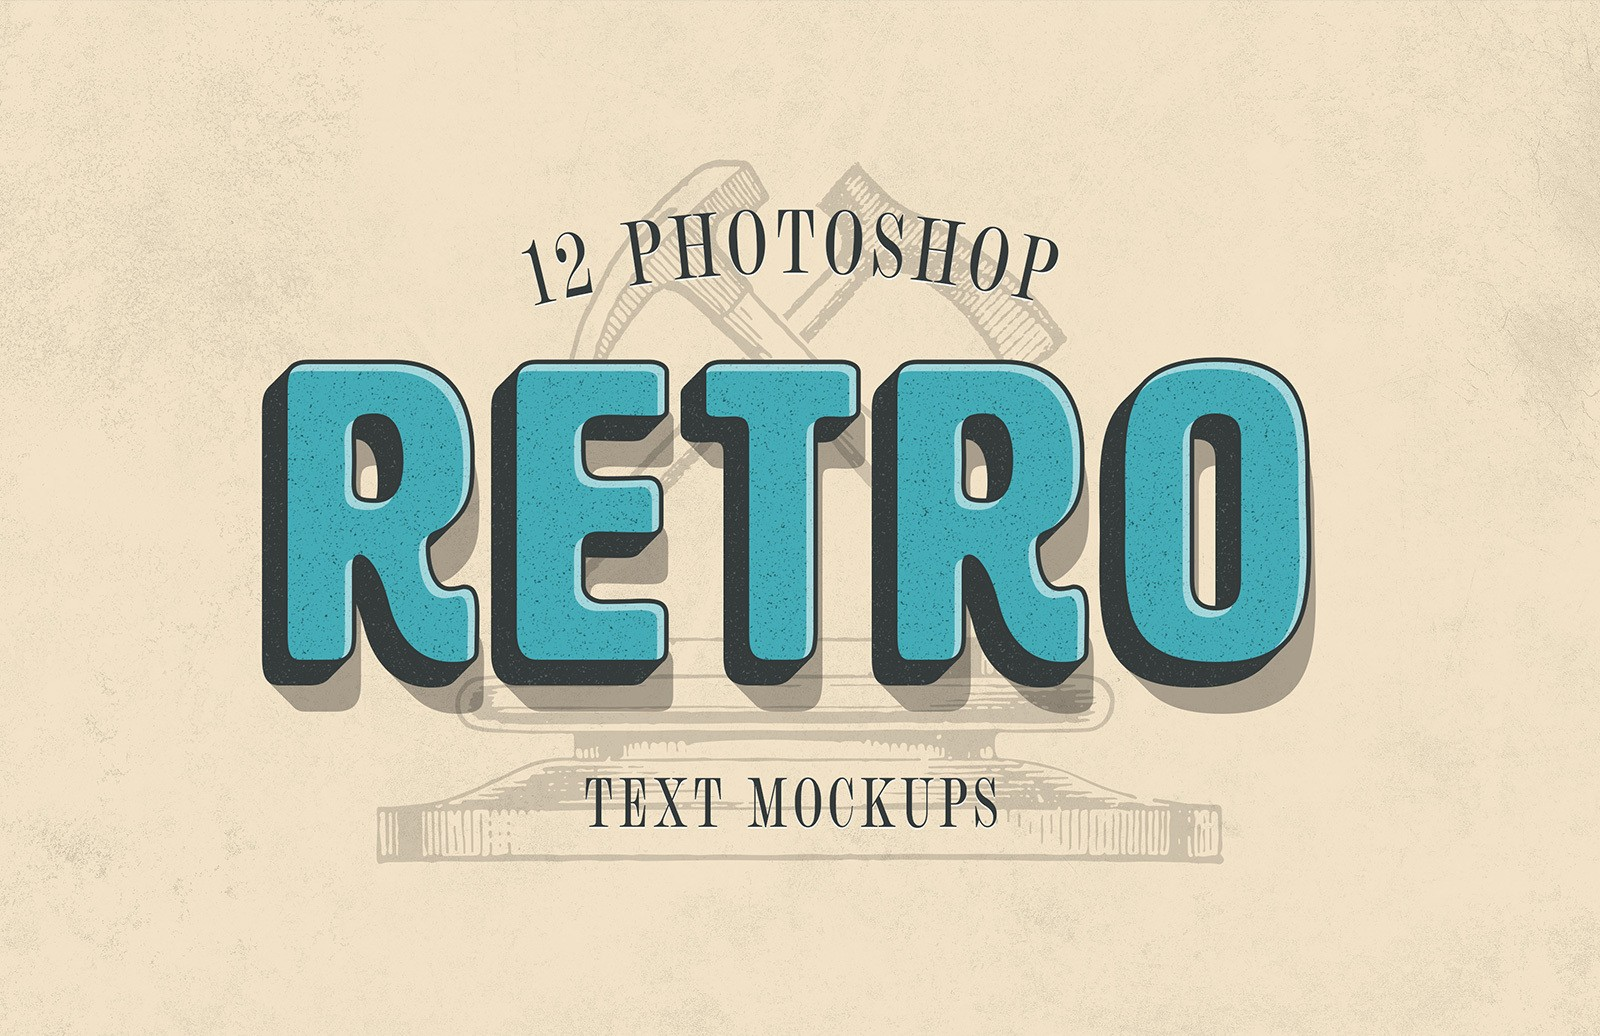 Photoshop Retro Text Mockups